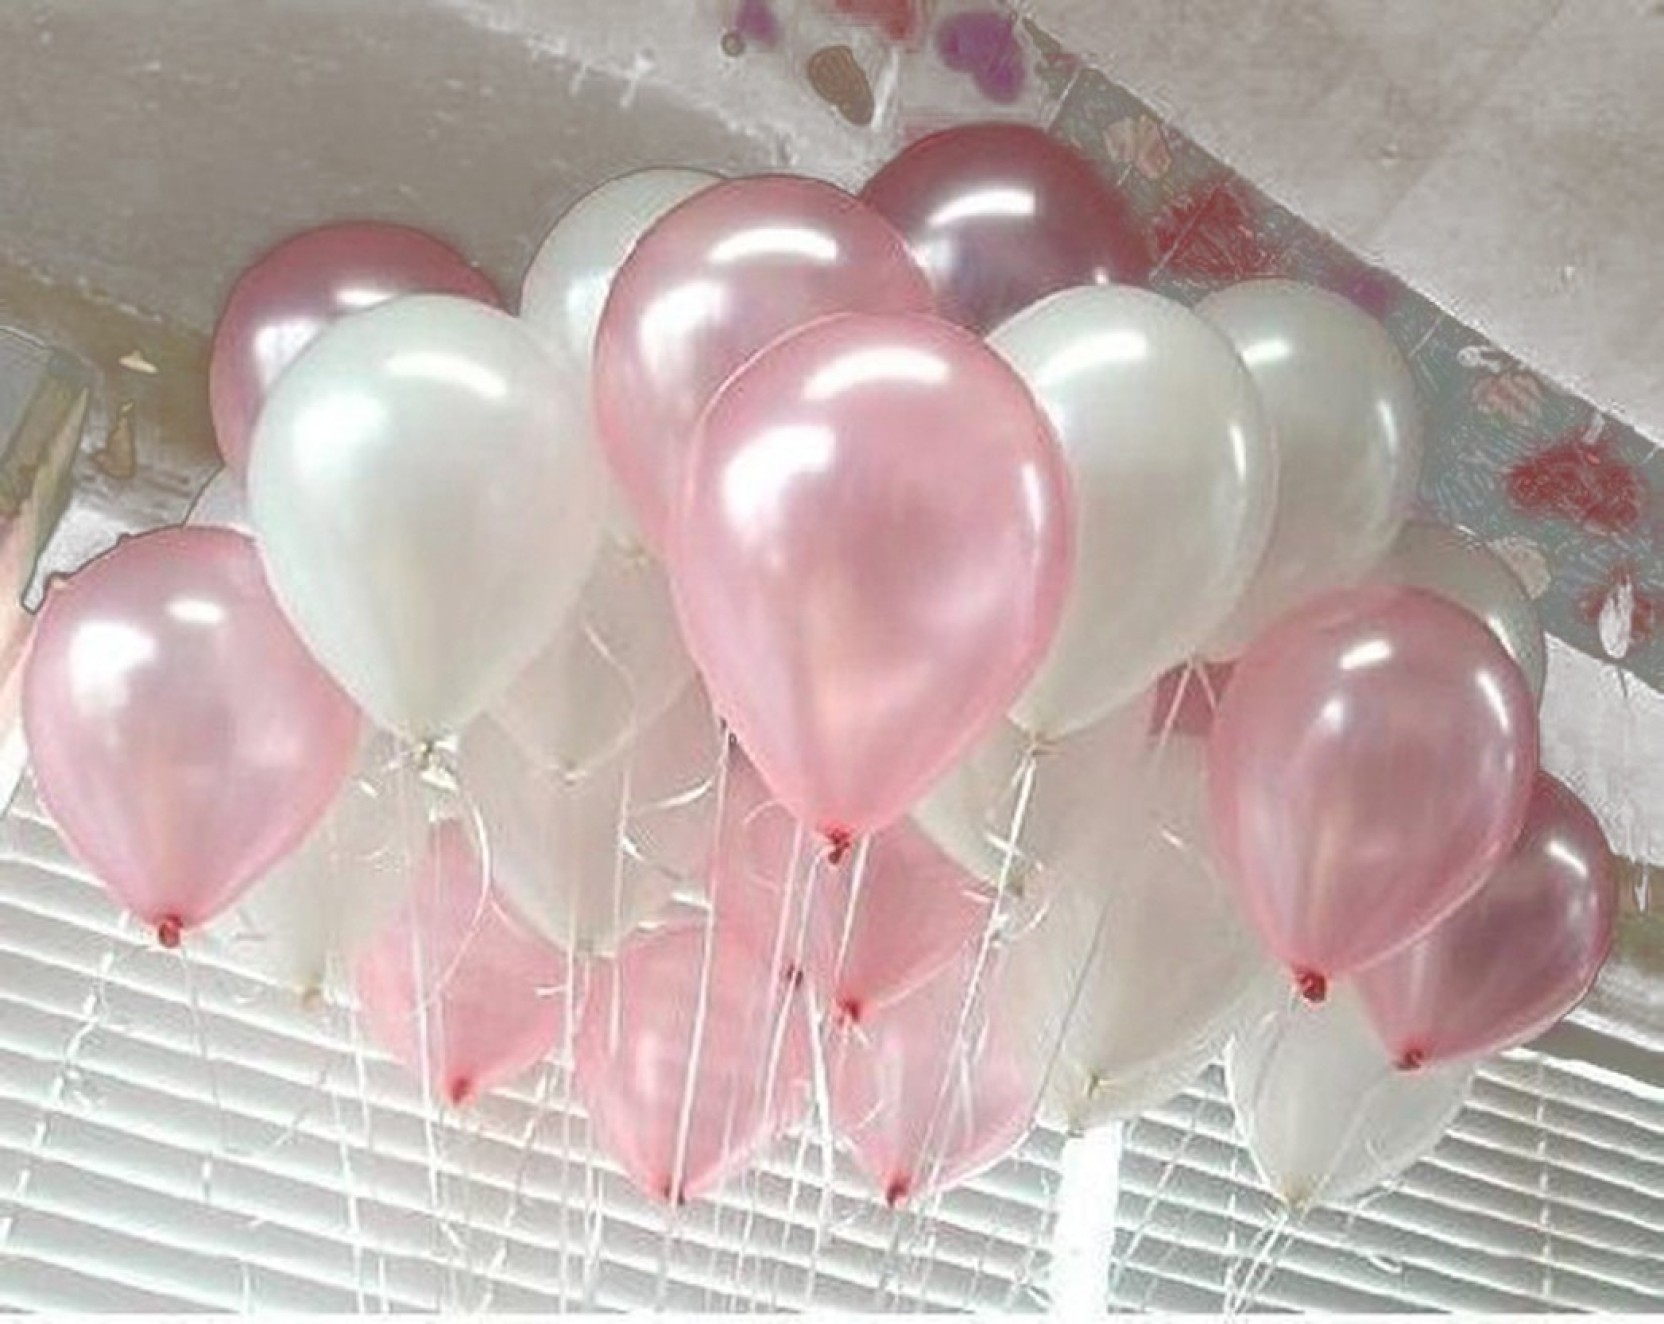 Themed Balloon Birthday Party Wedding Anniversary Engagement Supplies Decor Gift